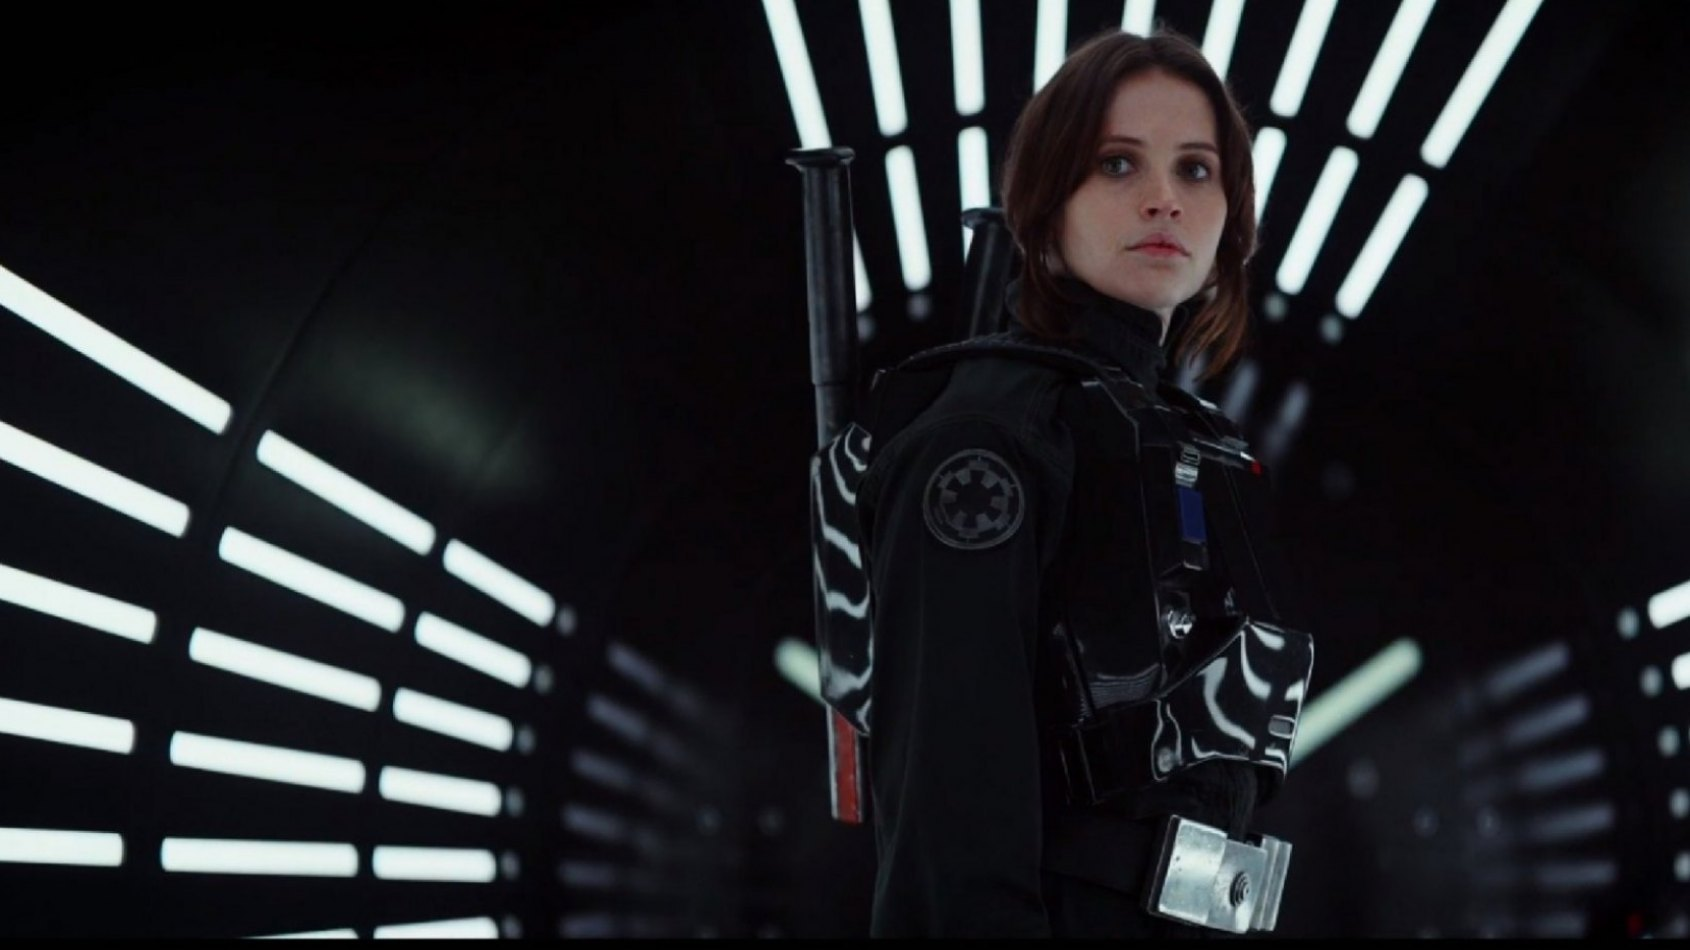 Rogue One ouvre la porte à un nouveau genre de films Star Wars